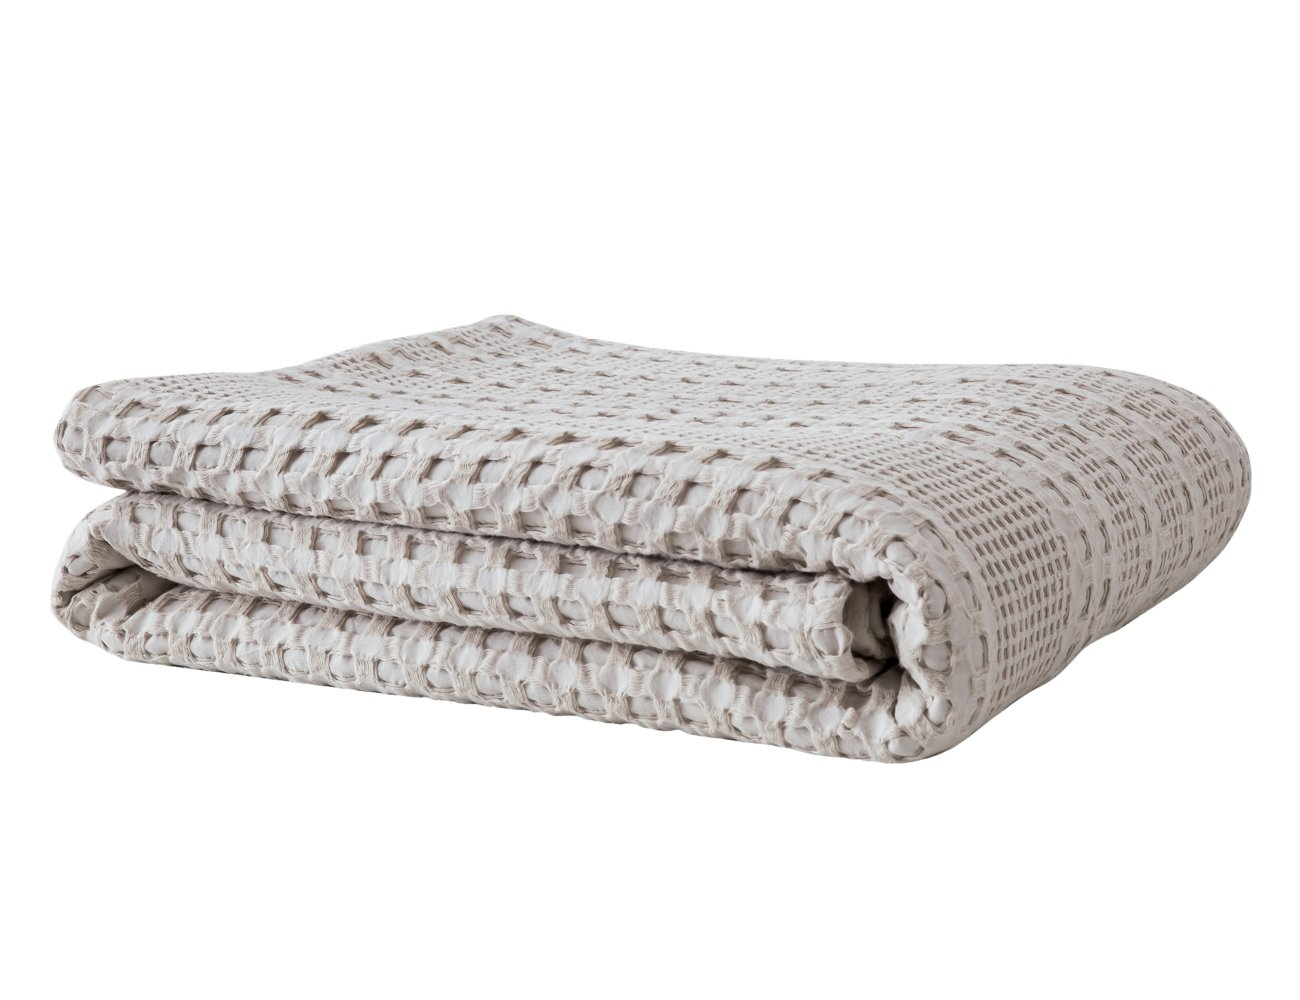 PHF Lightweight Waffle Weave Blanket for Summer 100% Cotton Twin Size Khaki